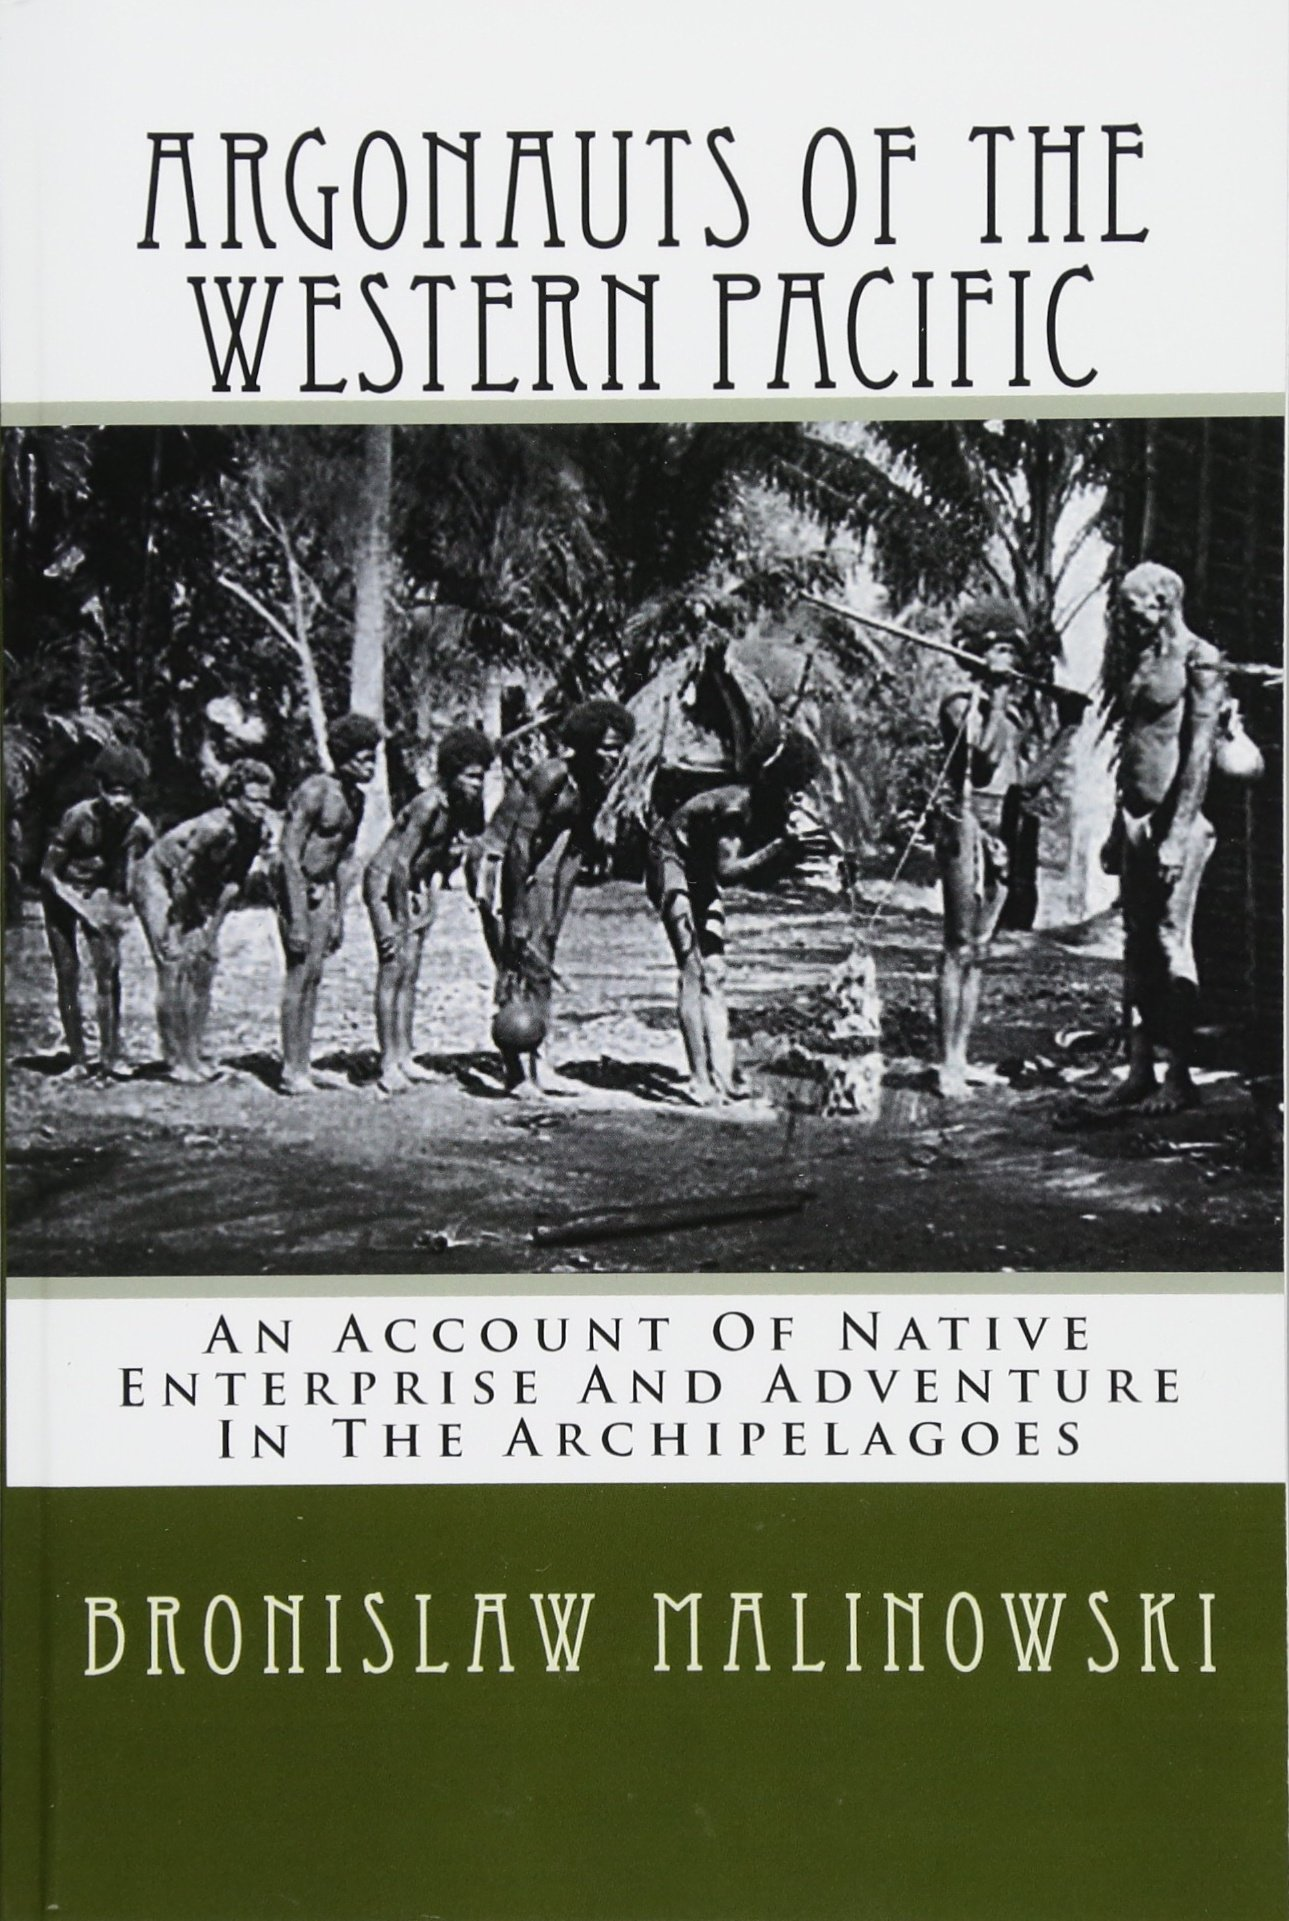 Argonauts Of The Western Pacific: An Account Of Native Enterprise And Adventure In The Archipelagoes of Melanesian New Guinea ebook